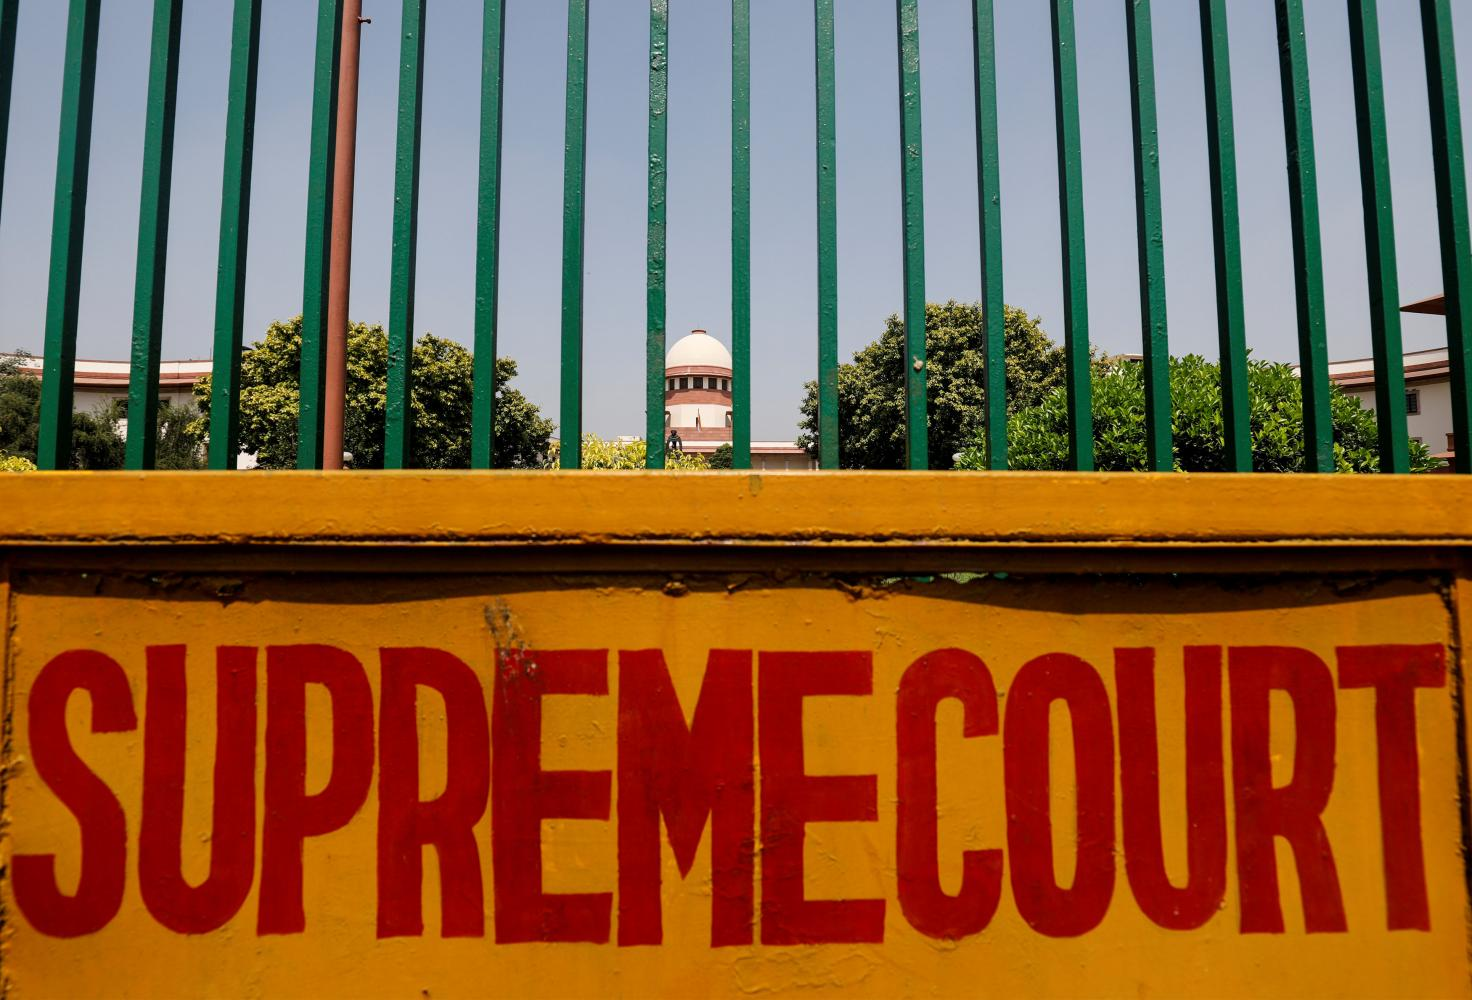 India's court system teeters on brink of collapse